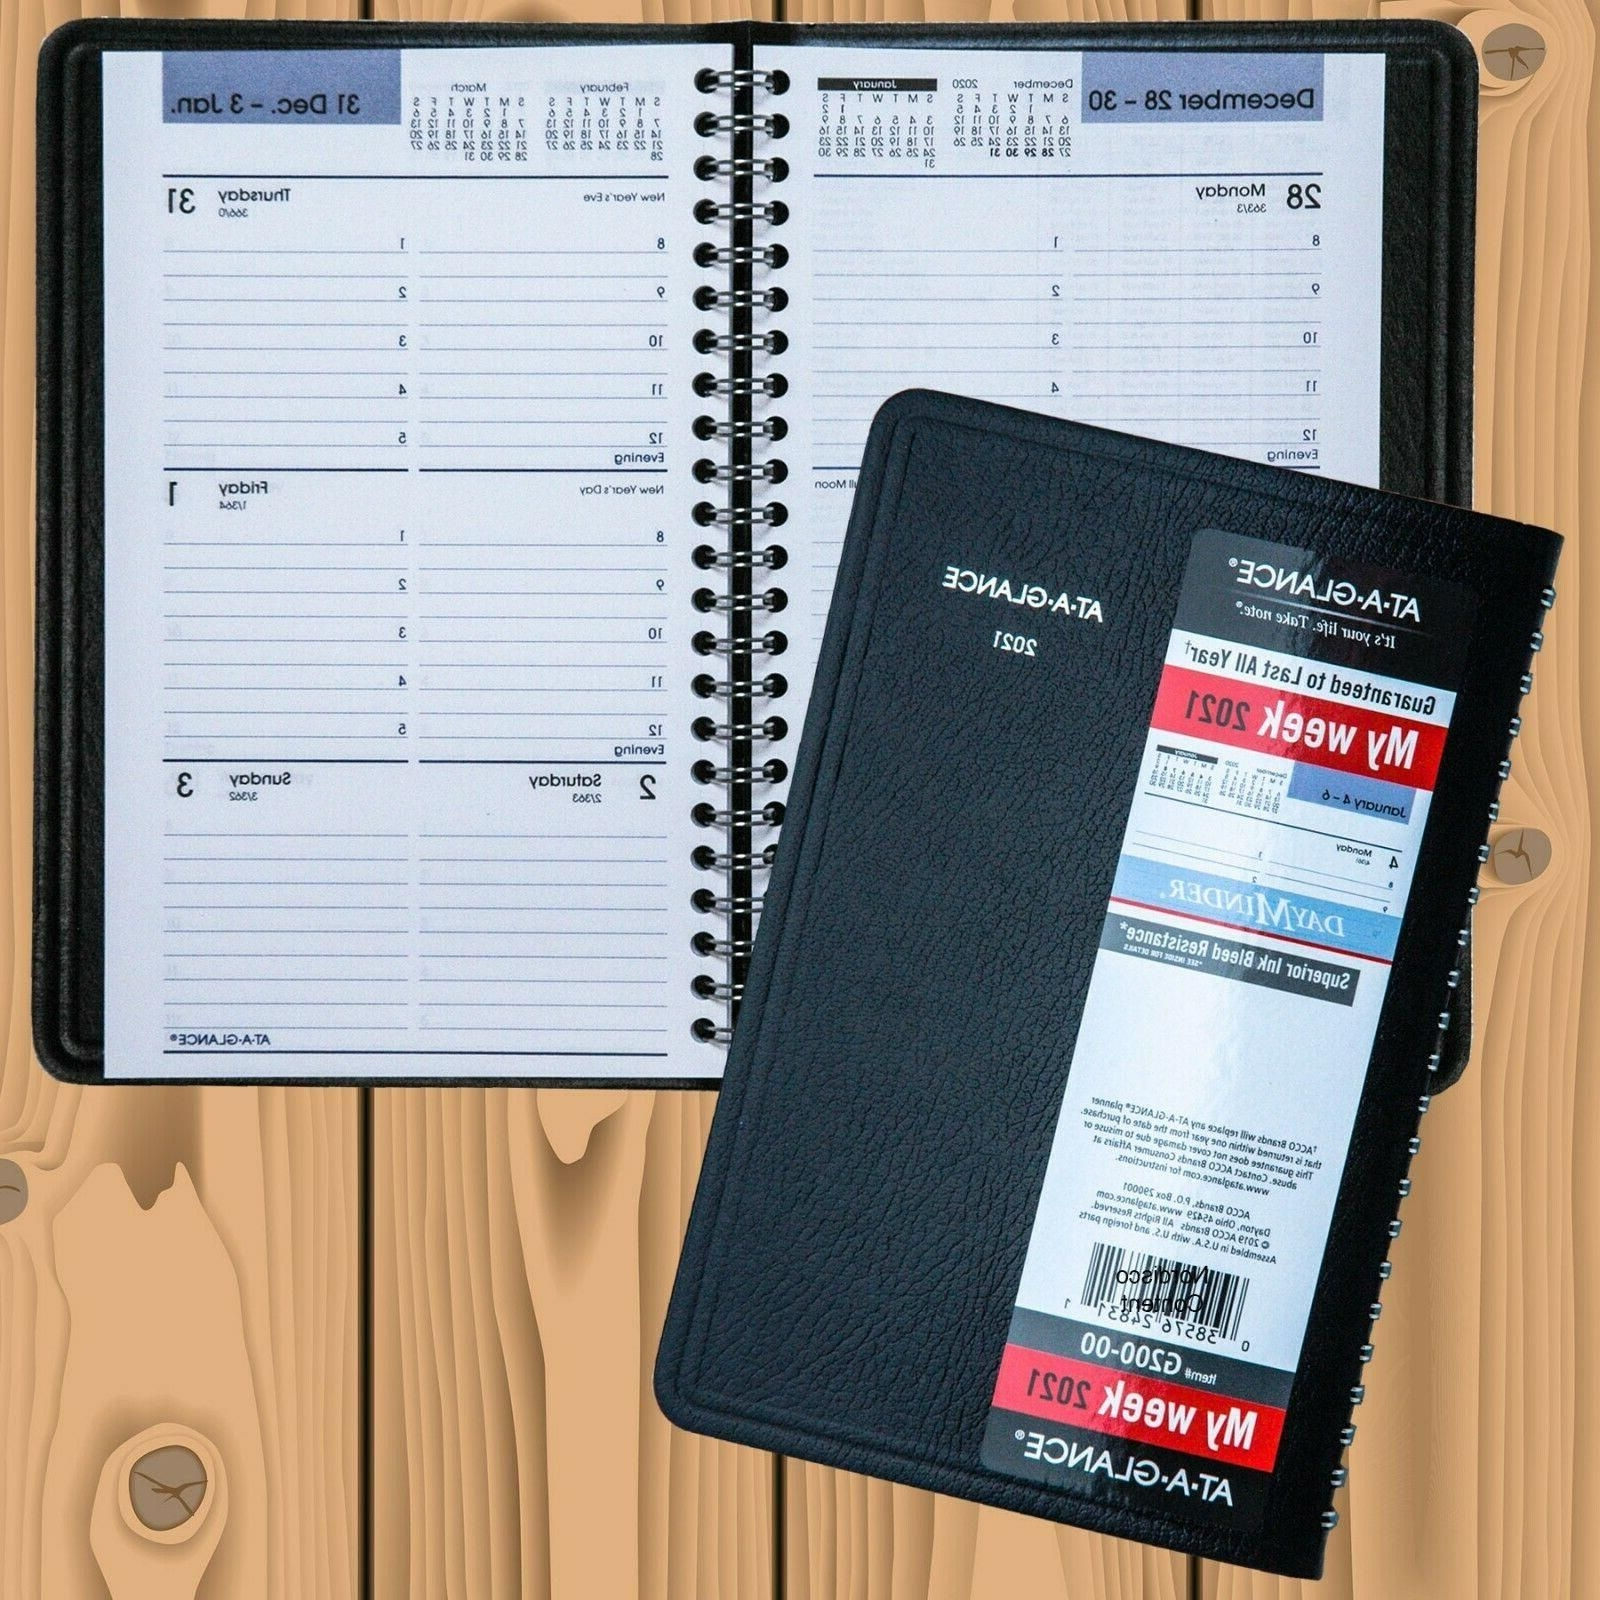 2021 At A Glance Dayminder G200 00 Weekly Appointment Book